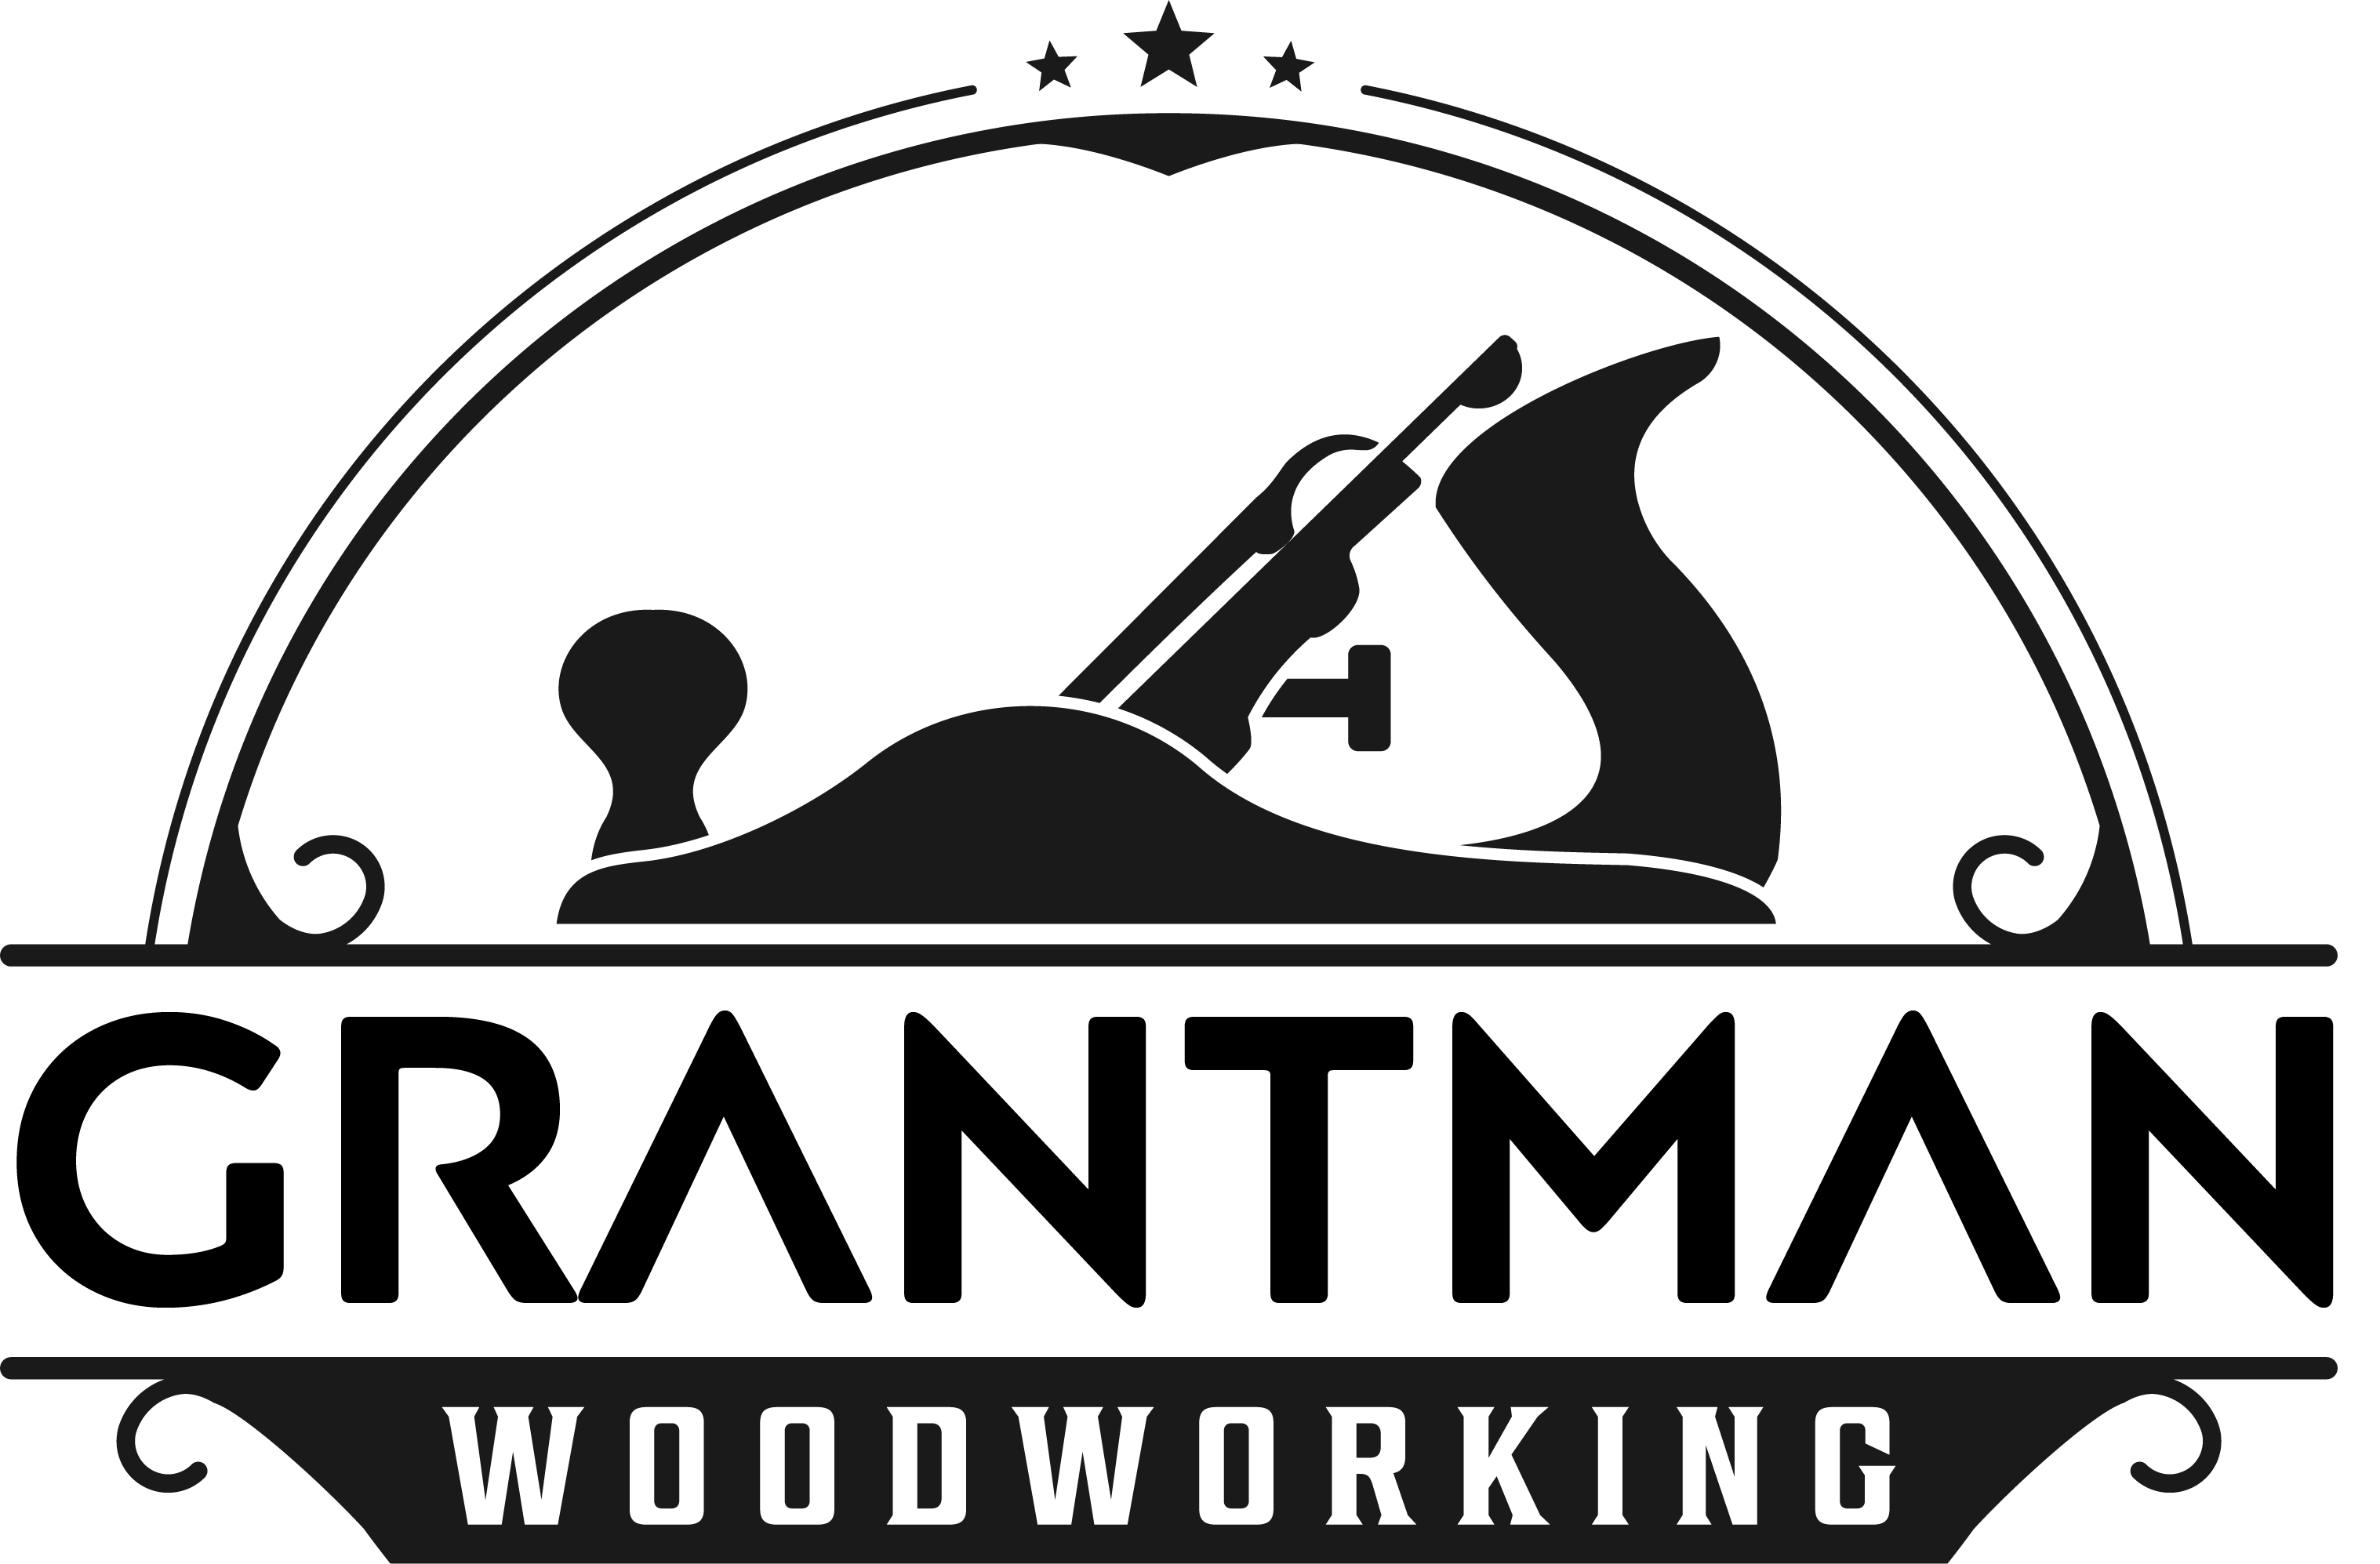 Woodworking by Grantman